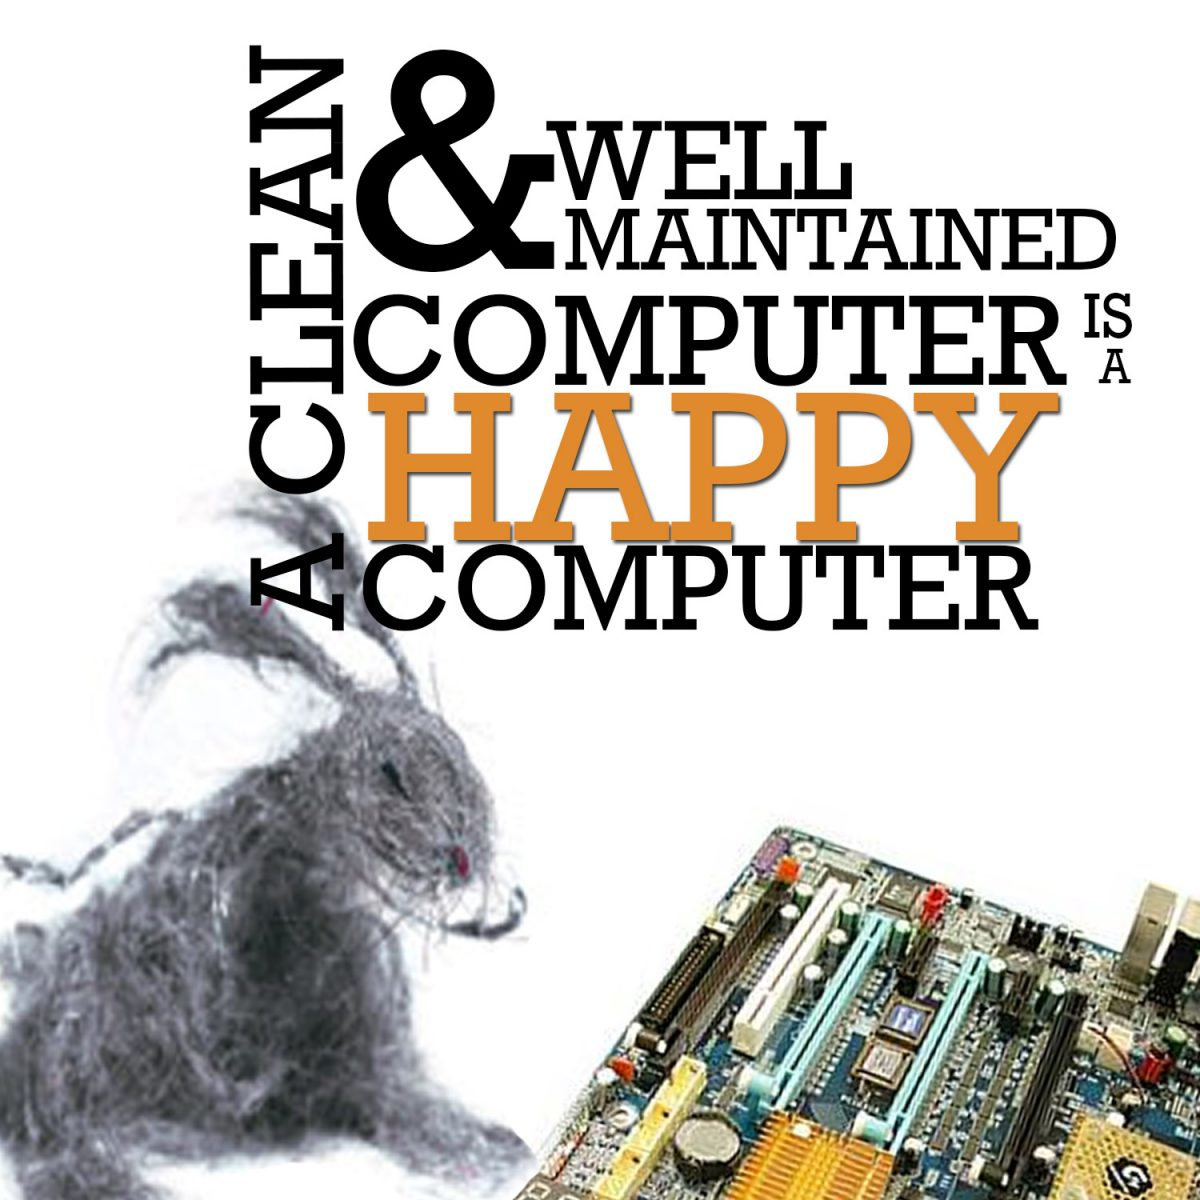 happy and clean computer